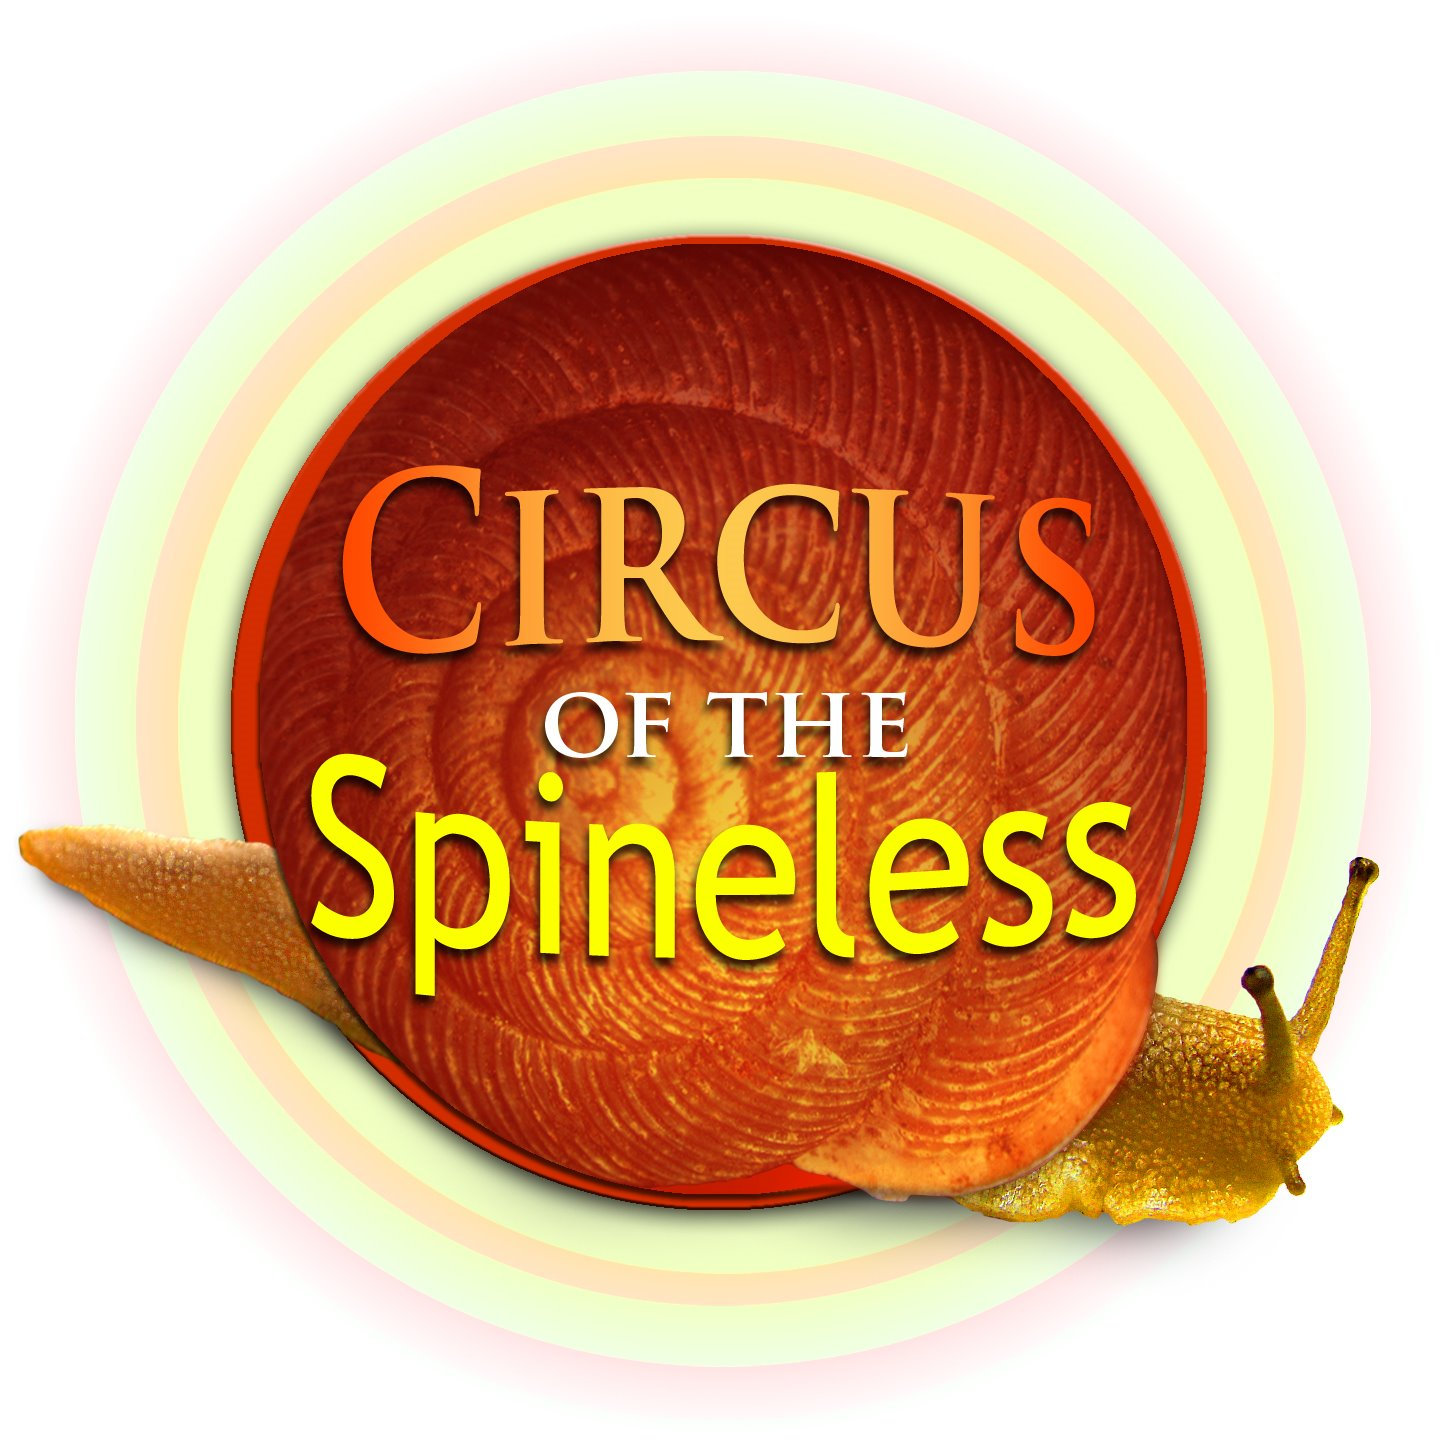 Circus of the Spineless